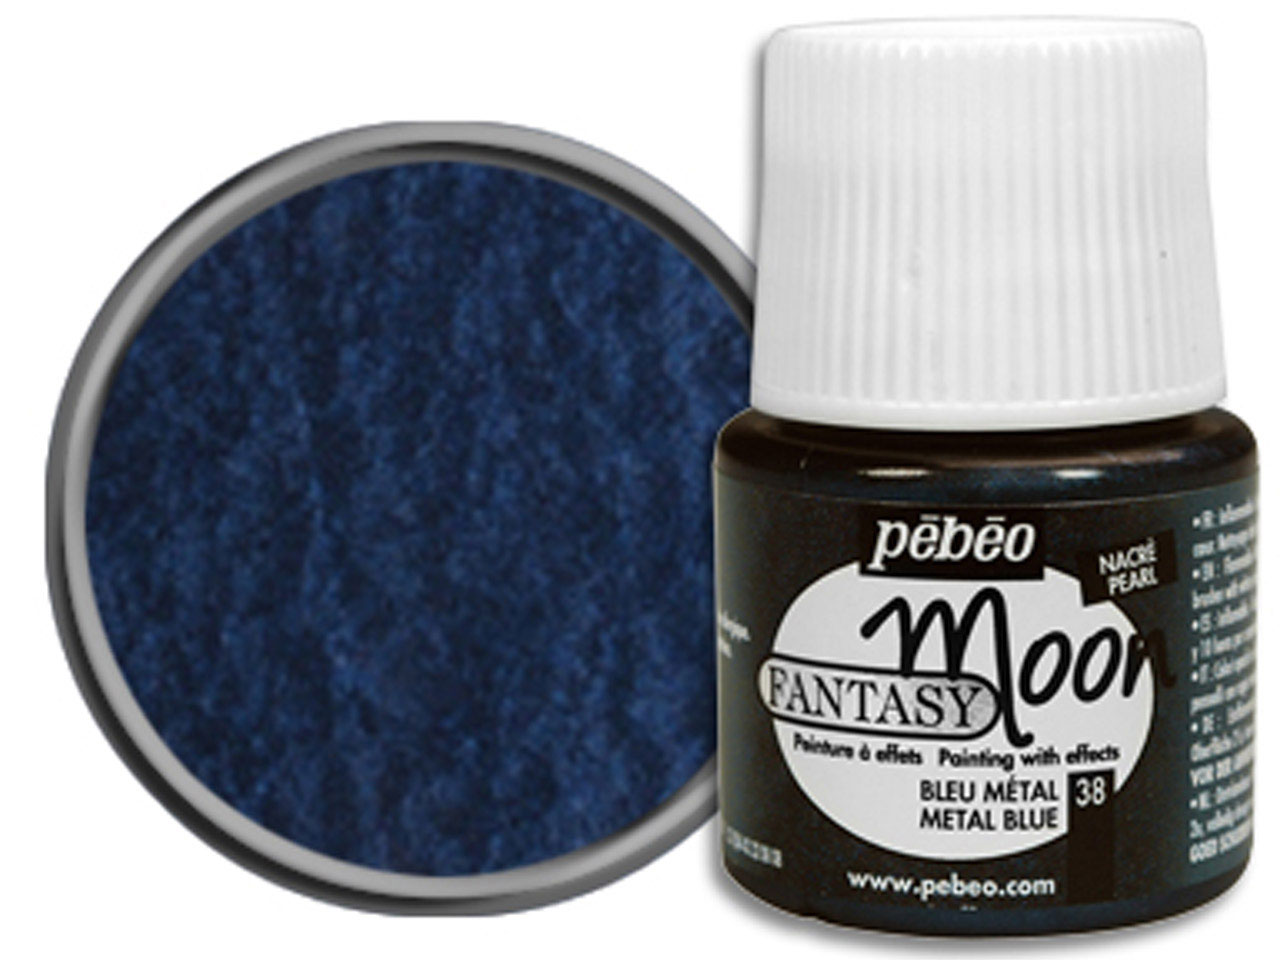 Pebeo Fantasy Moon, Metal Blue, 45 Ml Un 1263